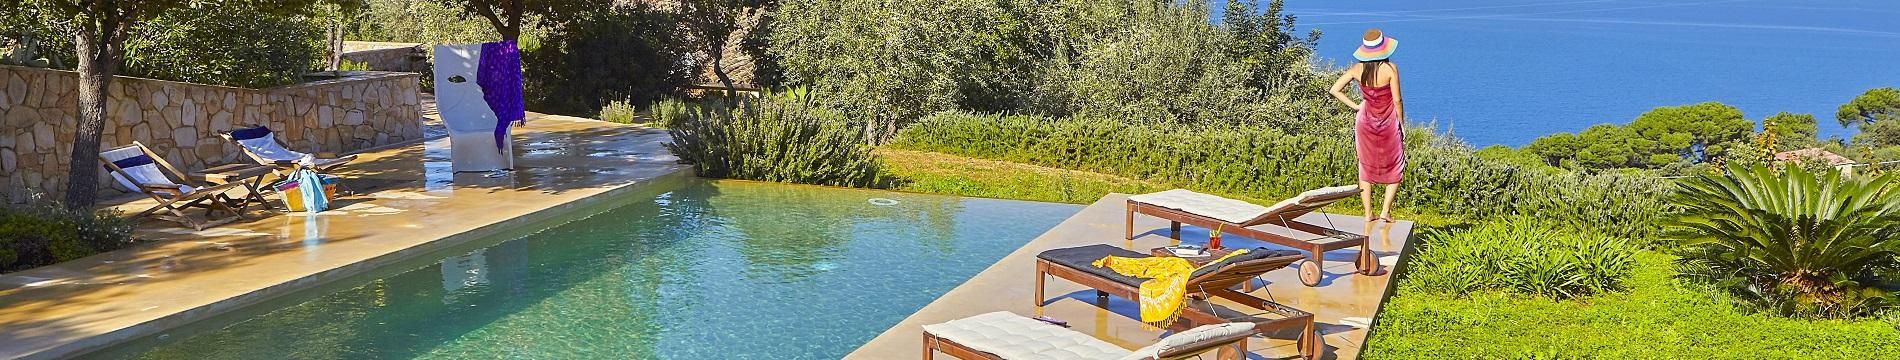 Villas in Sicily with pools near Palermo